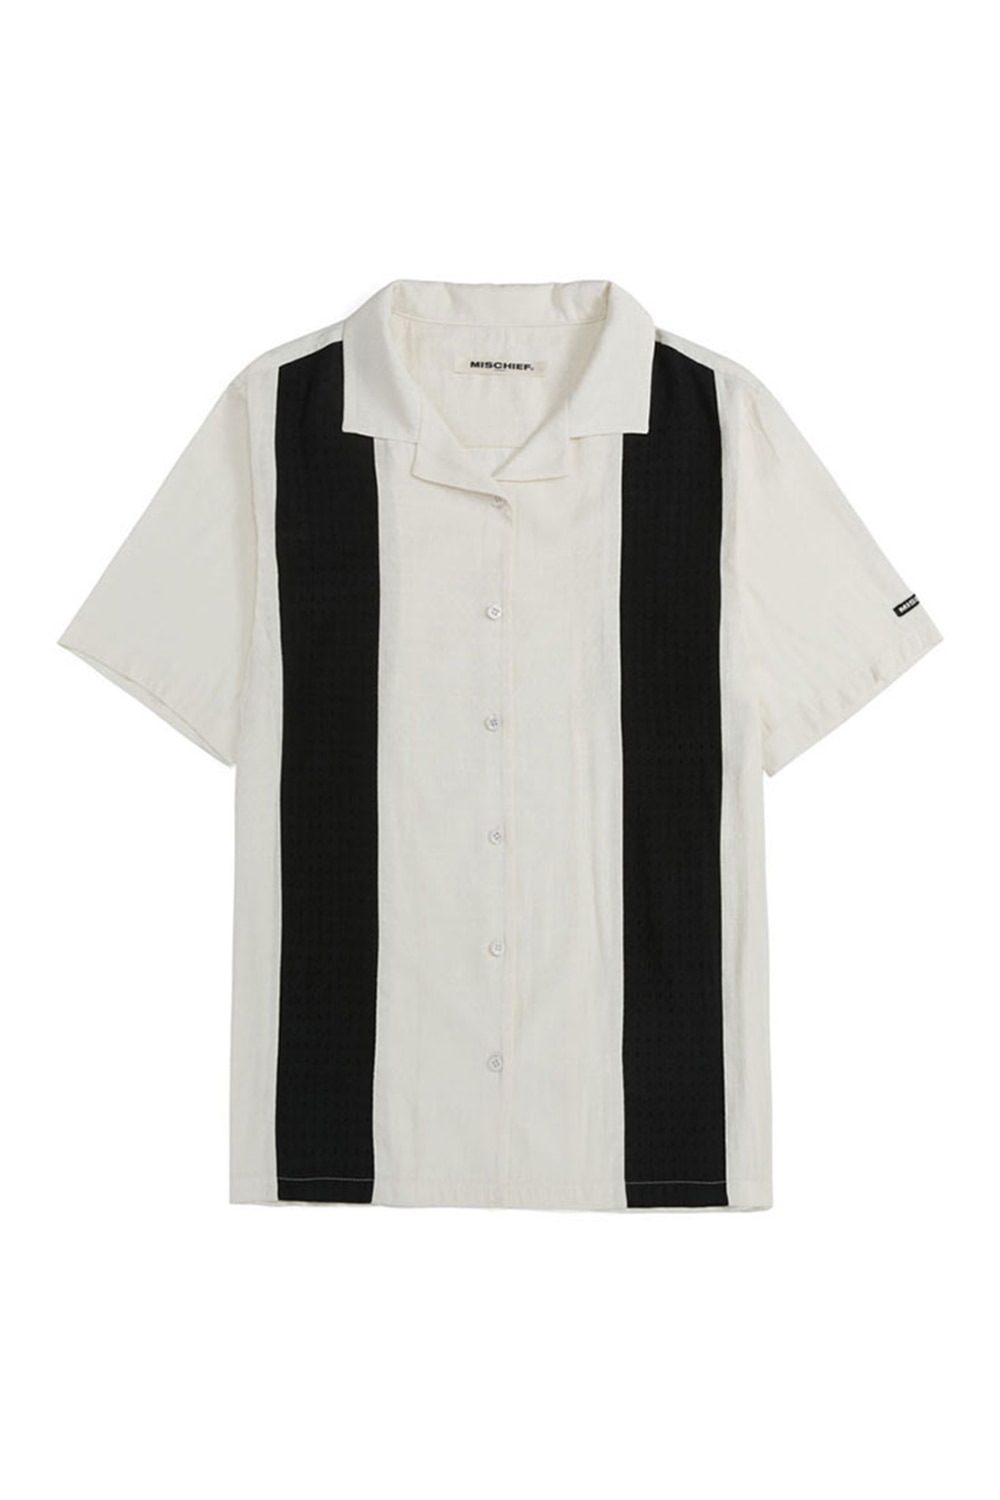 ARGYLE BOWLING SHIRT_white/black